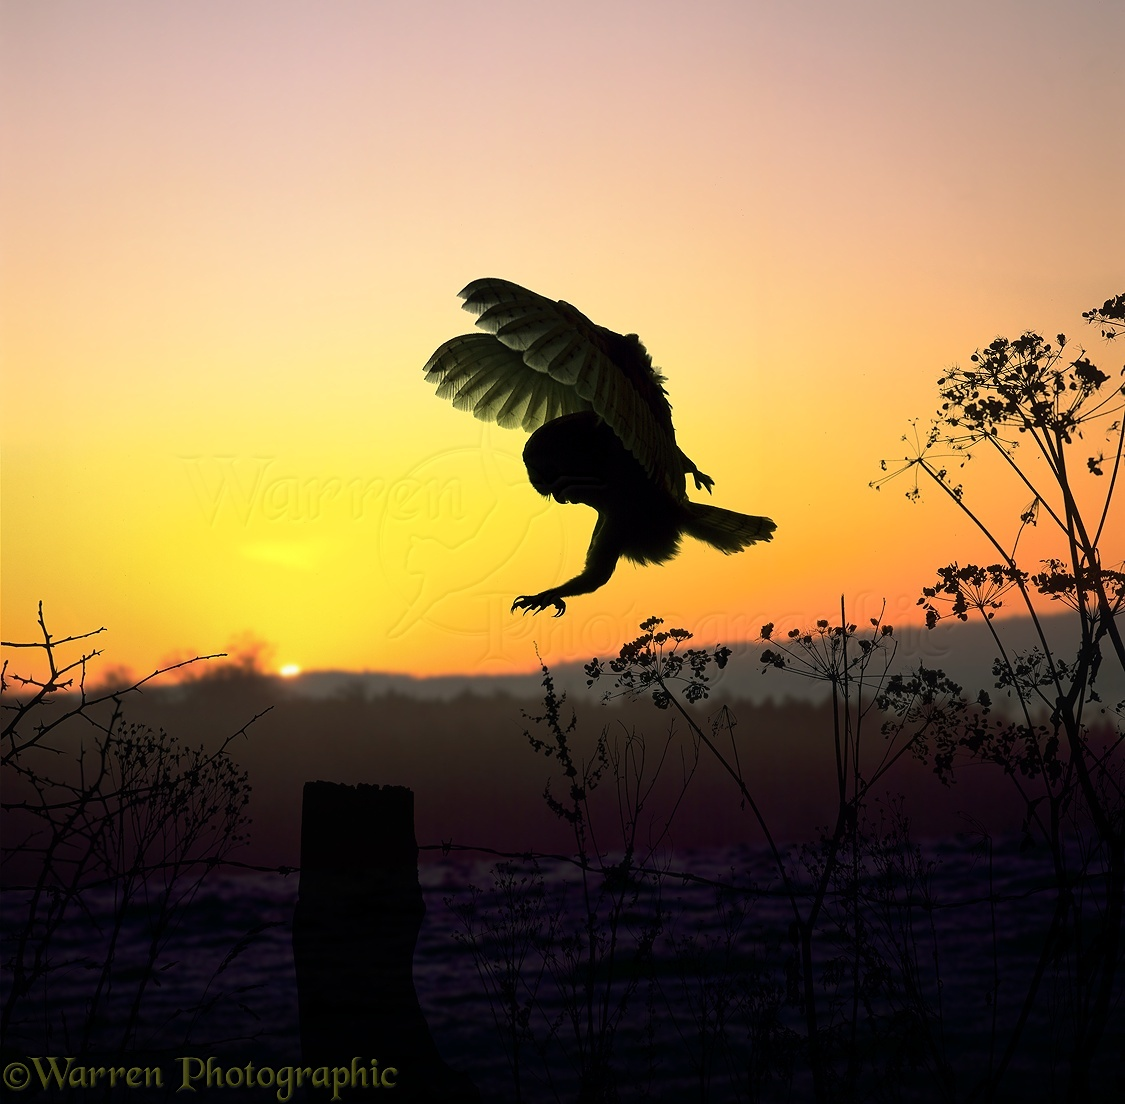 Animals In Action Image Of Barn Owl Silhouette WP00007